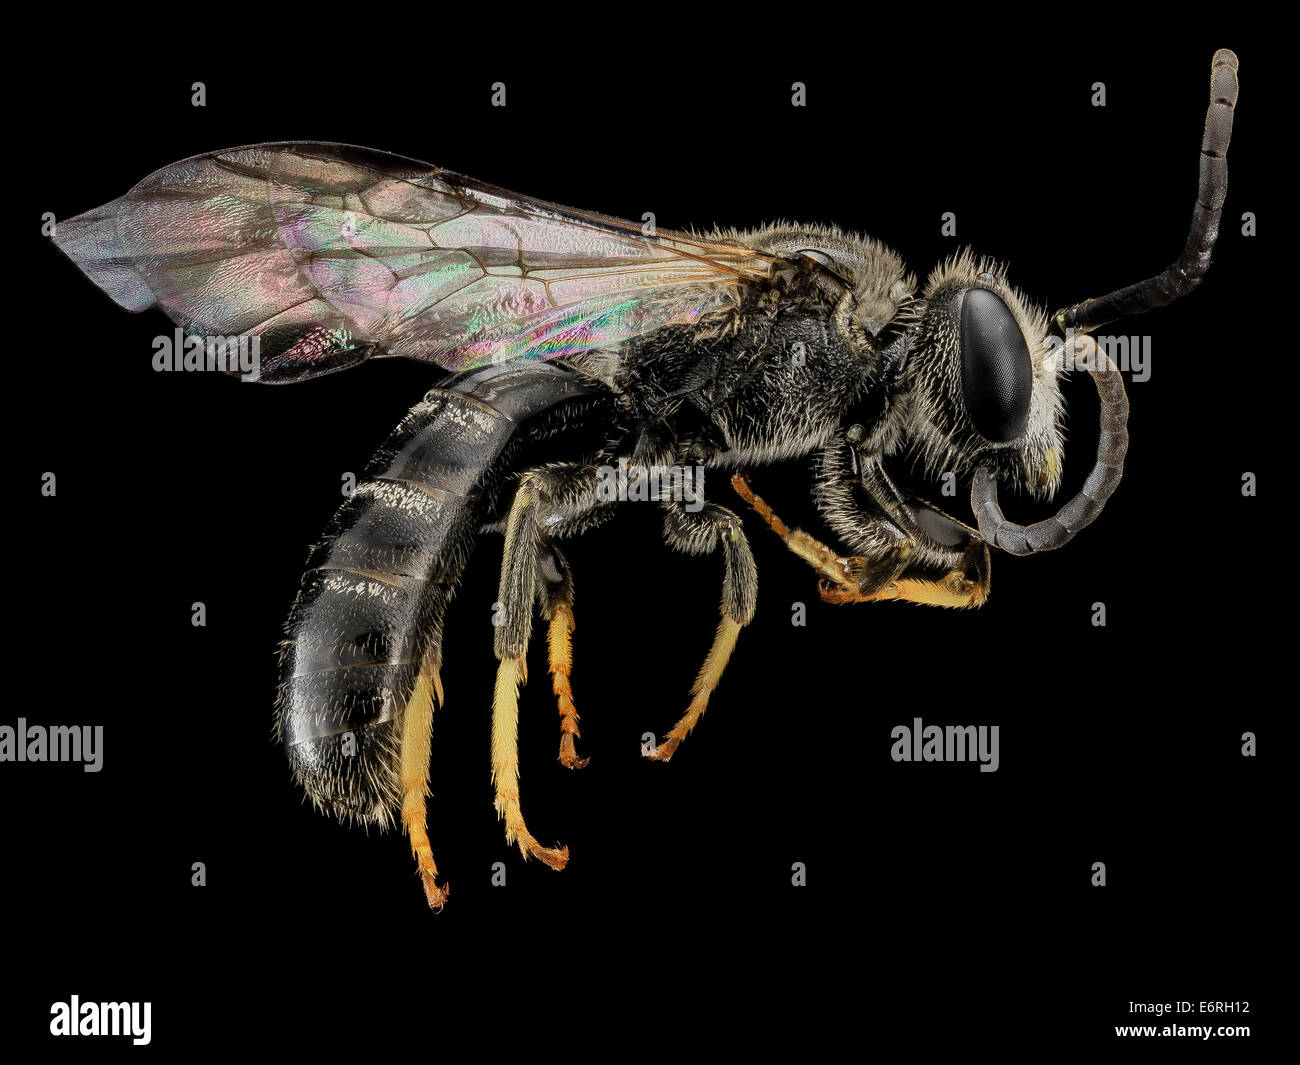 Lasioglossum truncatum, M, Side, MD, Cecil County_2013-07-10-174345 ZS PMax_10055996896_o A male, with great, long - Stock Image